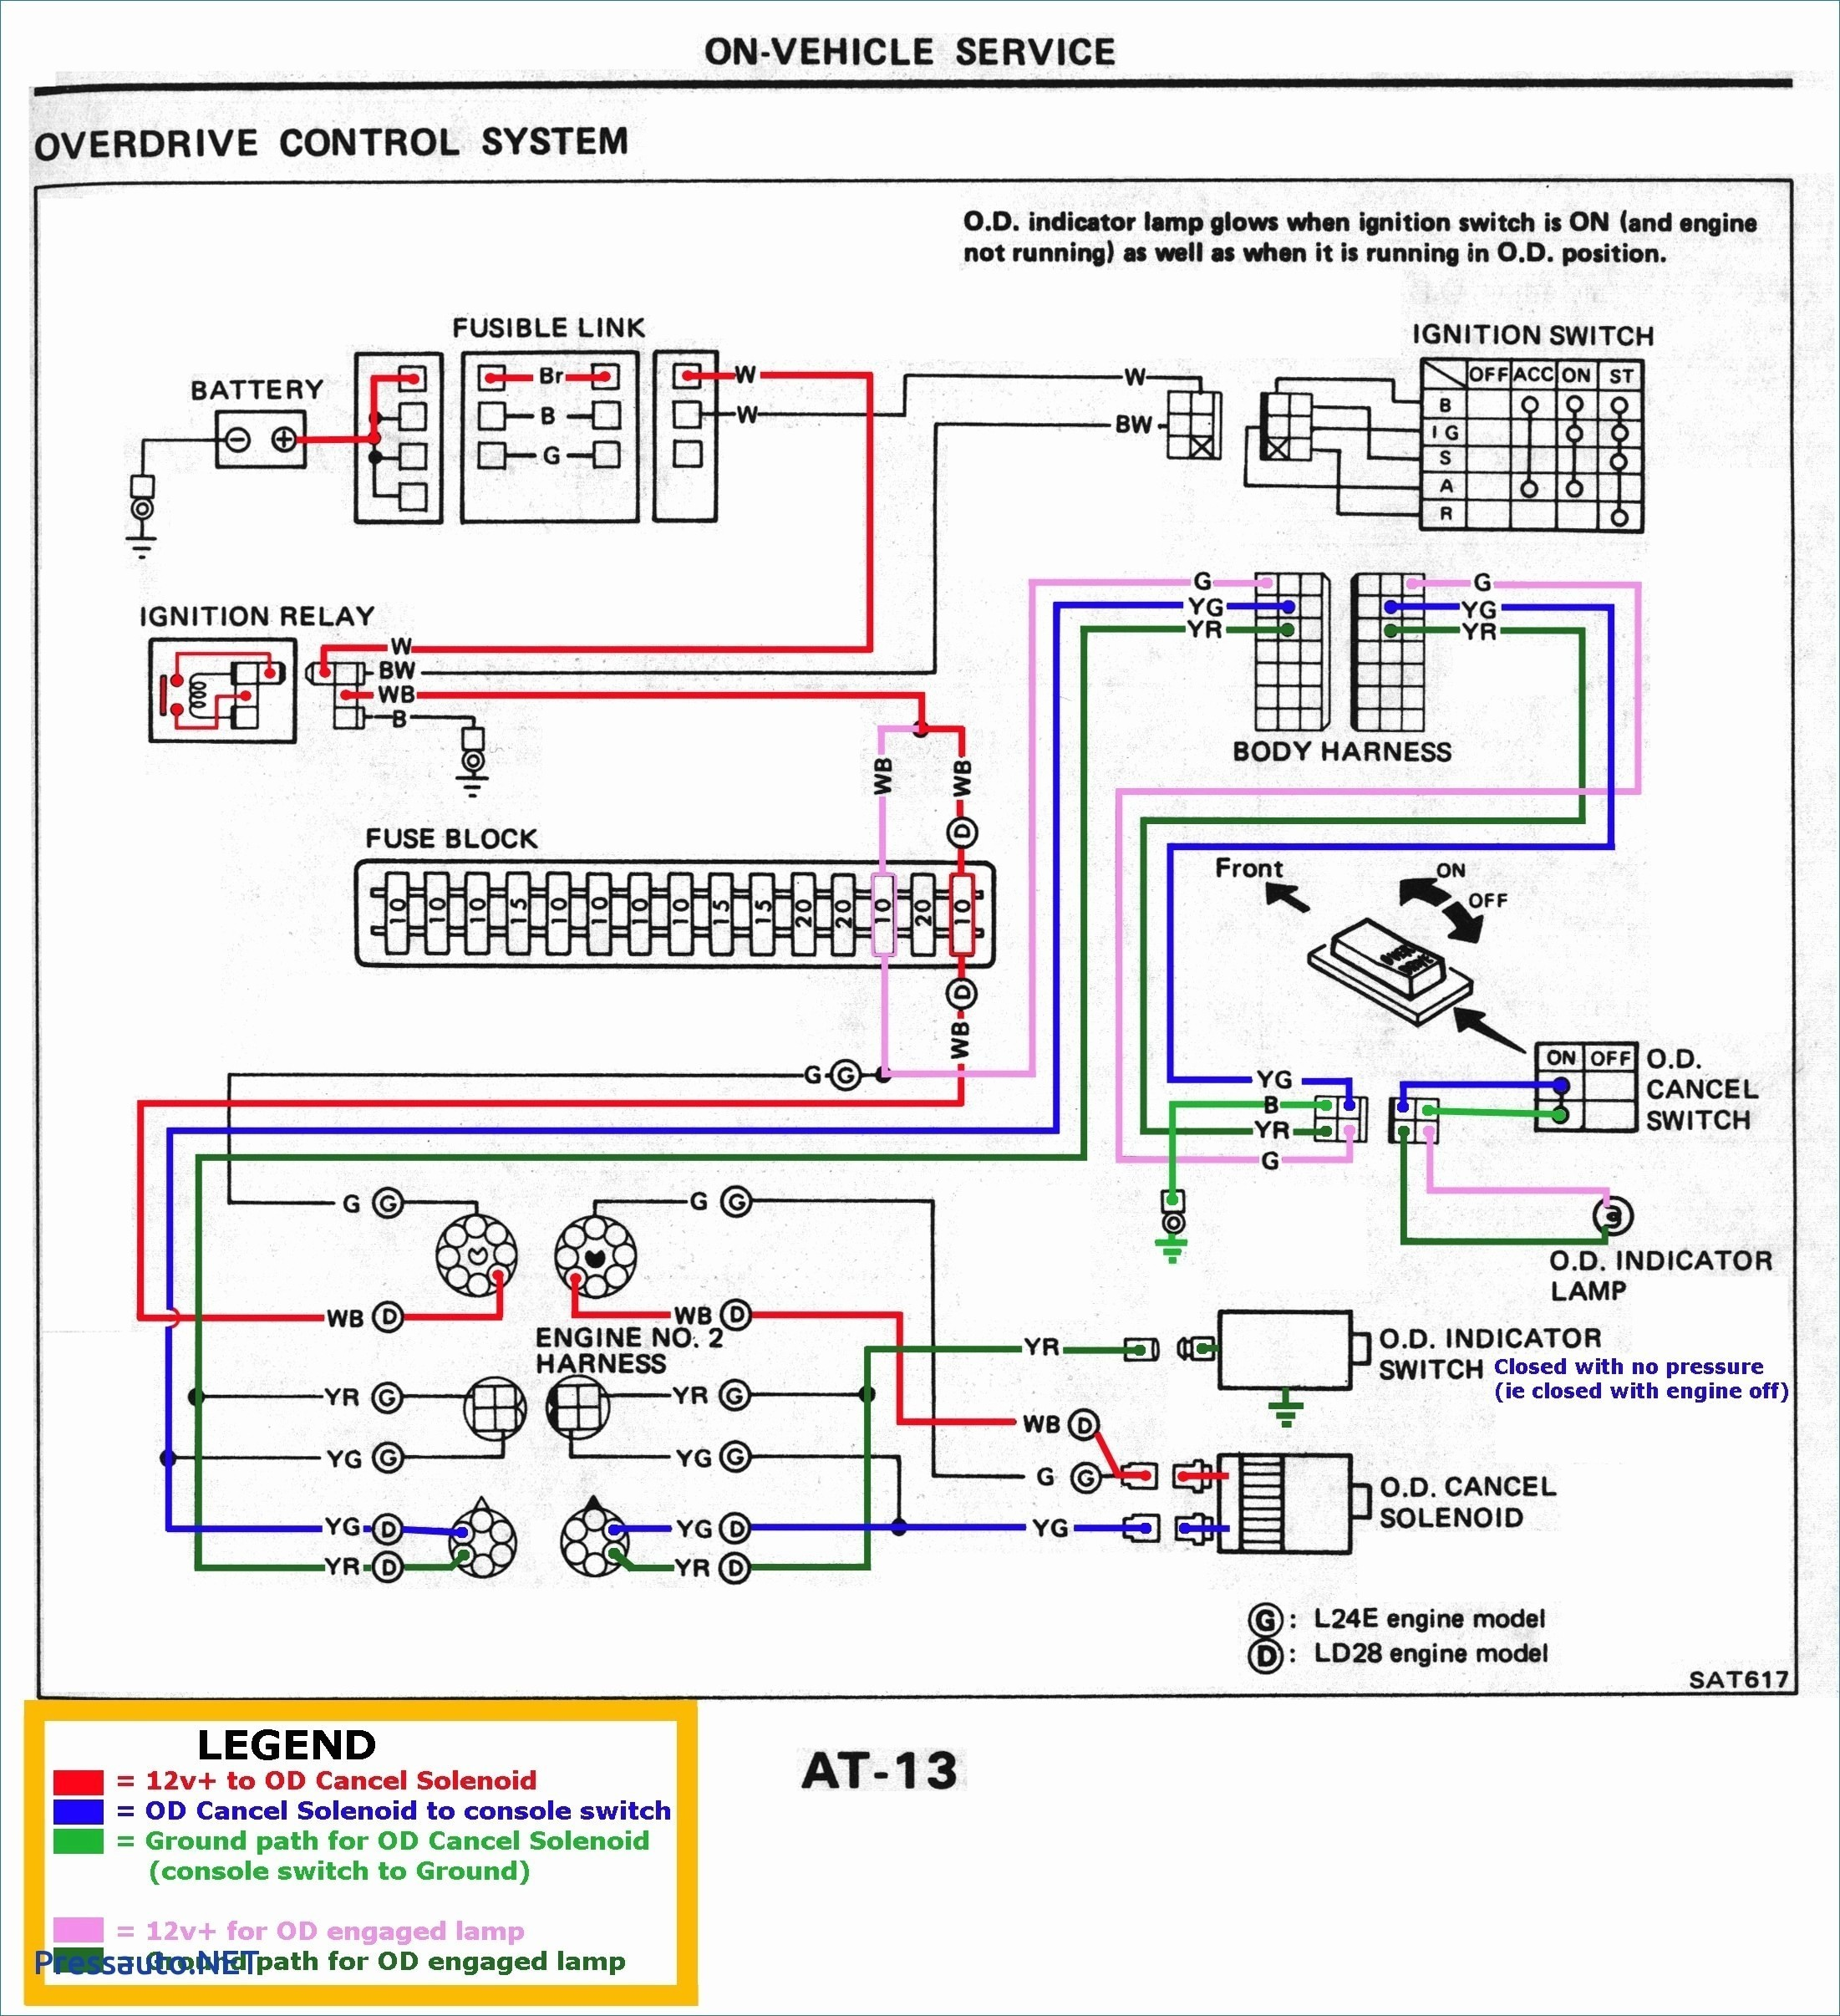 2007 Nissan Maxima Engine Diagram Fuse Box Diagram Peugeot 106 Automotive Wiring Diagrams Of 2007 Nissan Maxima Engine Diagram